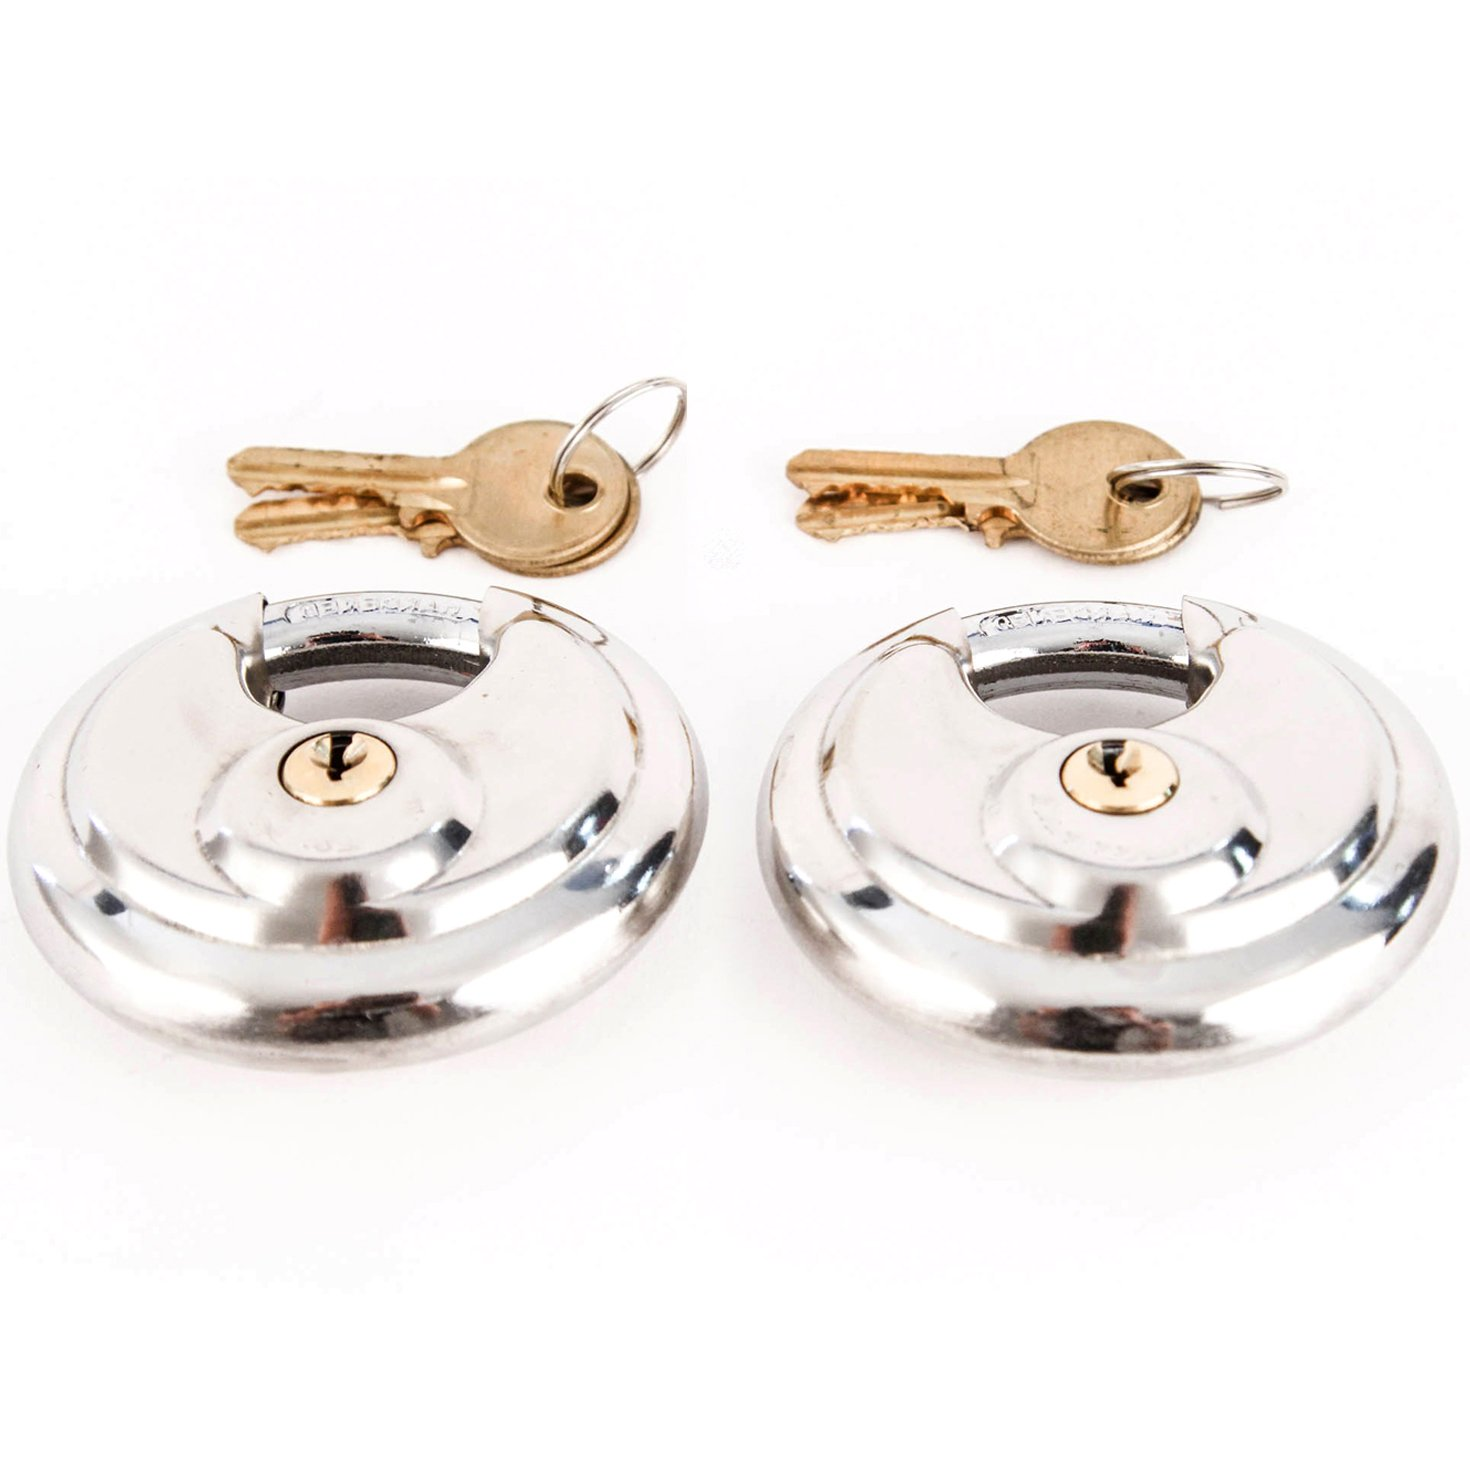 Red Hound Auto Stainless Steel Shrouded Disc Padlock with 2-3/4'' Wide Body (Pack of 2) Shackle Shielded Trailer Self Storage Pair Keyed Alike with 4 Keys Included 70 mm